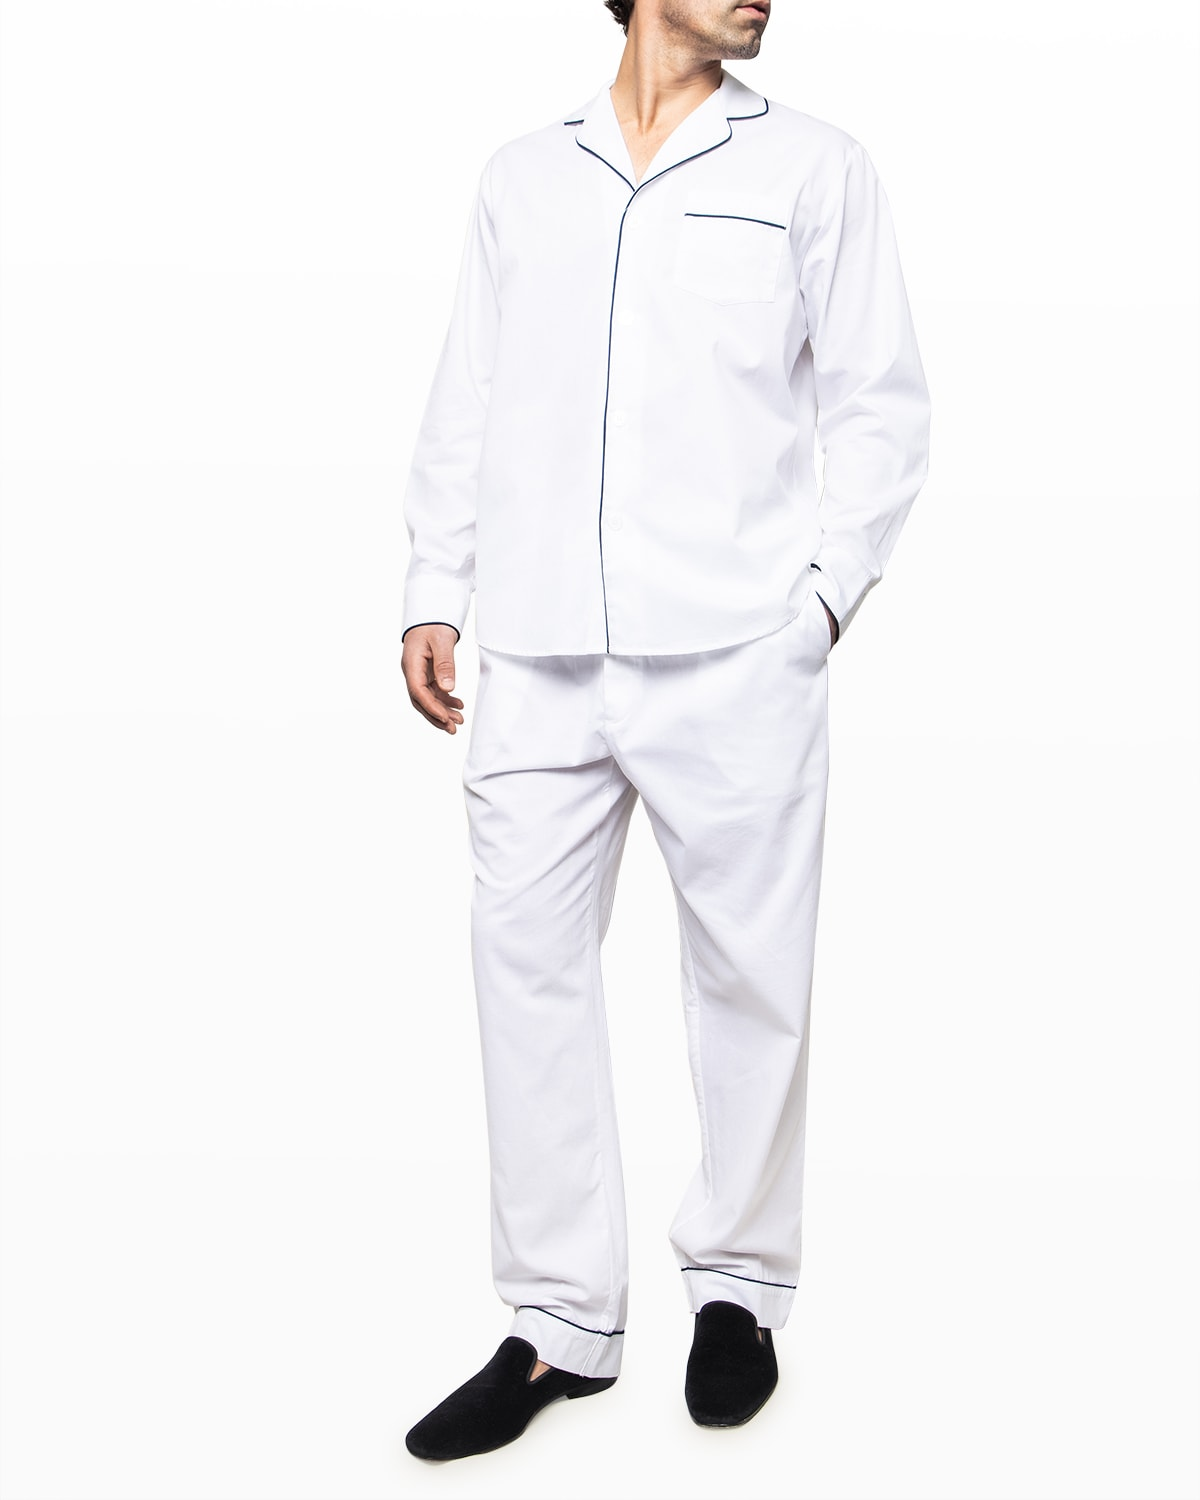 Men's Solid Twill Pajama Set With Piping